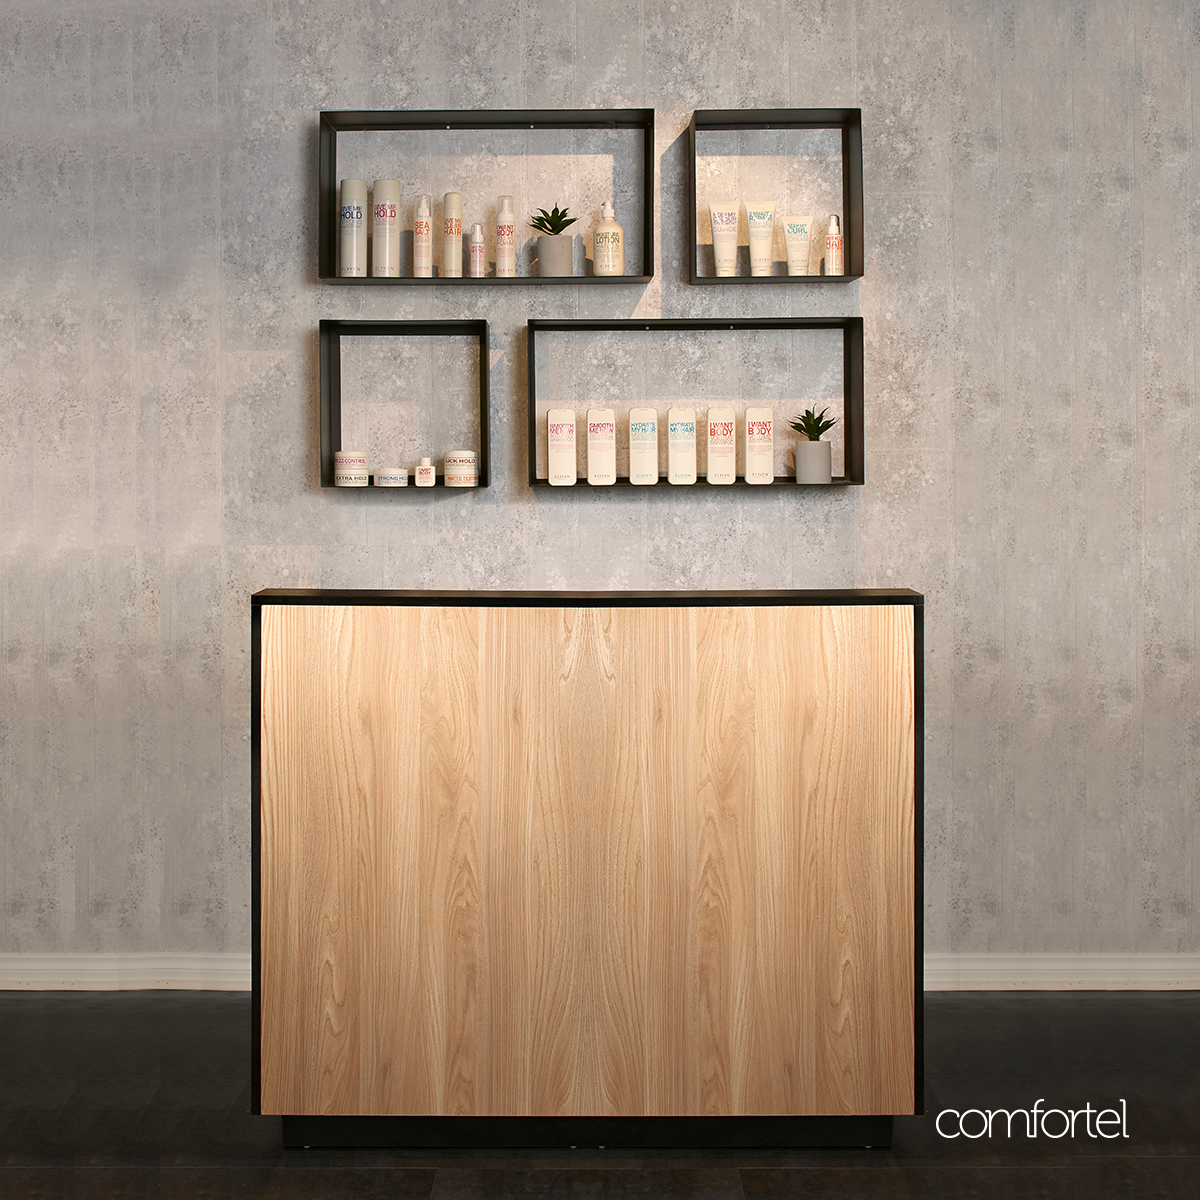 Alister Reception Desk For Australia Nz Salon Professionals From Comfortel Order Online Or Directly With One Of Our Showrooms Today